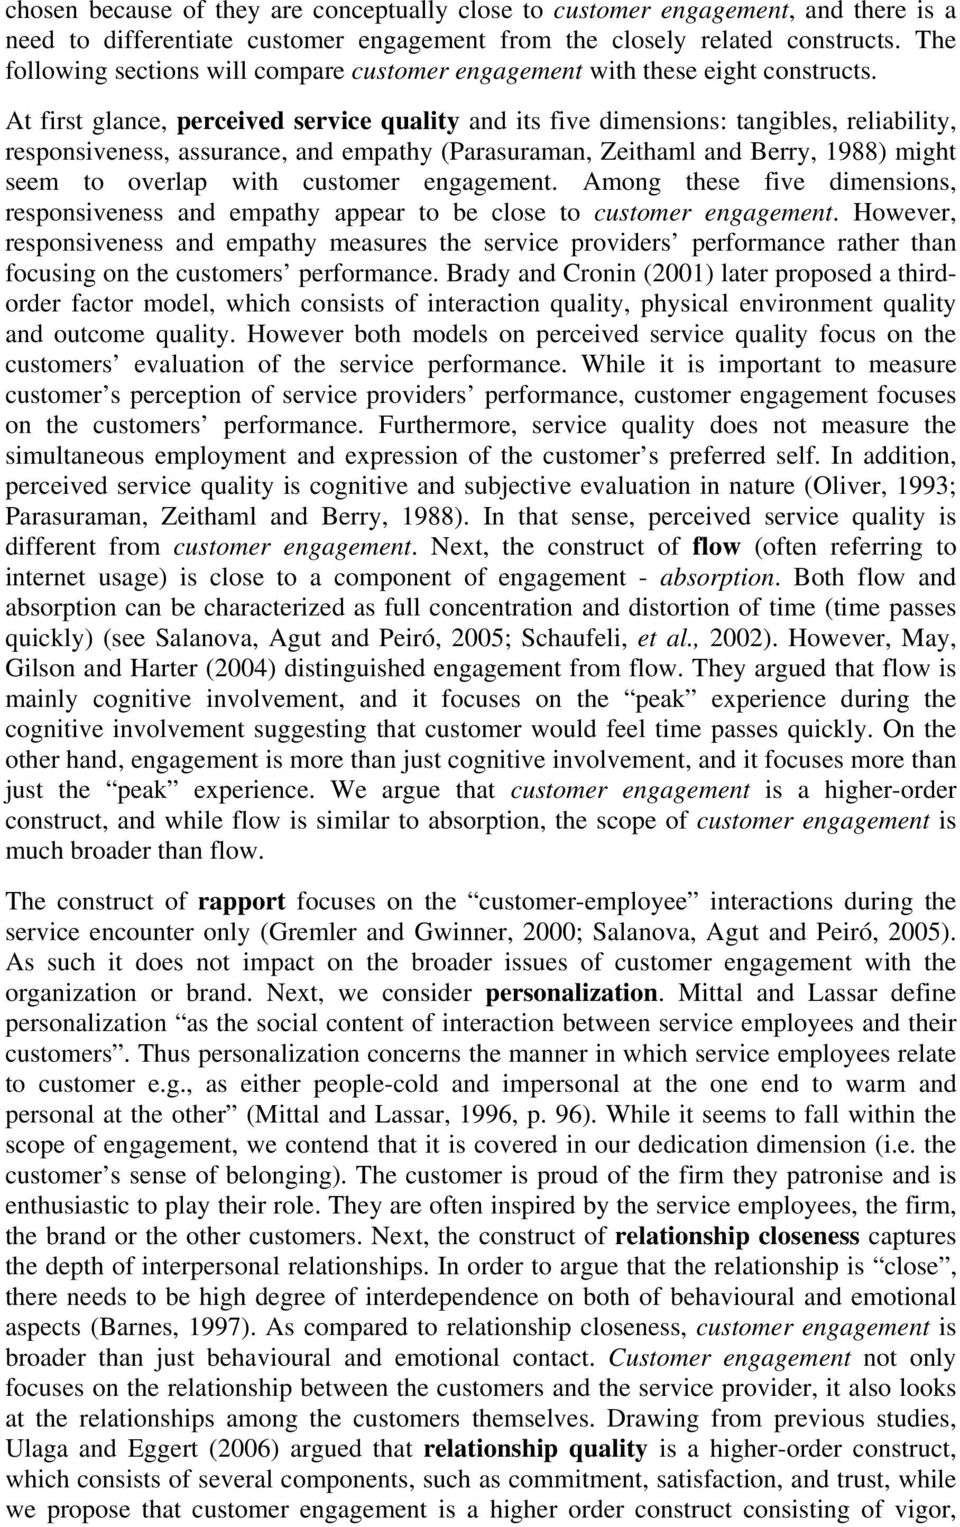 At first glance, perceived service quality and its five dimensions: tangibles, reliability, responsiveness, assurance, and empathy (Parasuraman, Zeithaml and Berry, 1988) might seem to overlap with